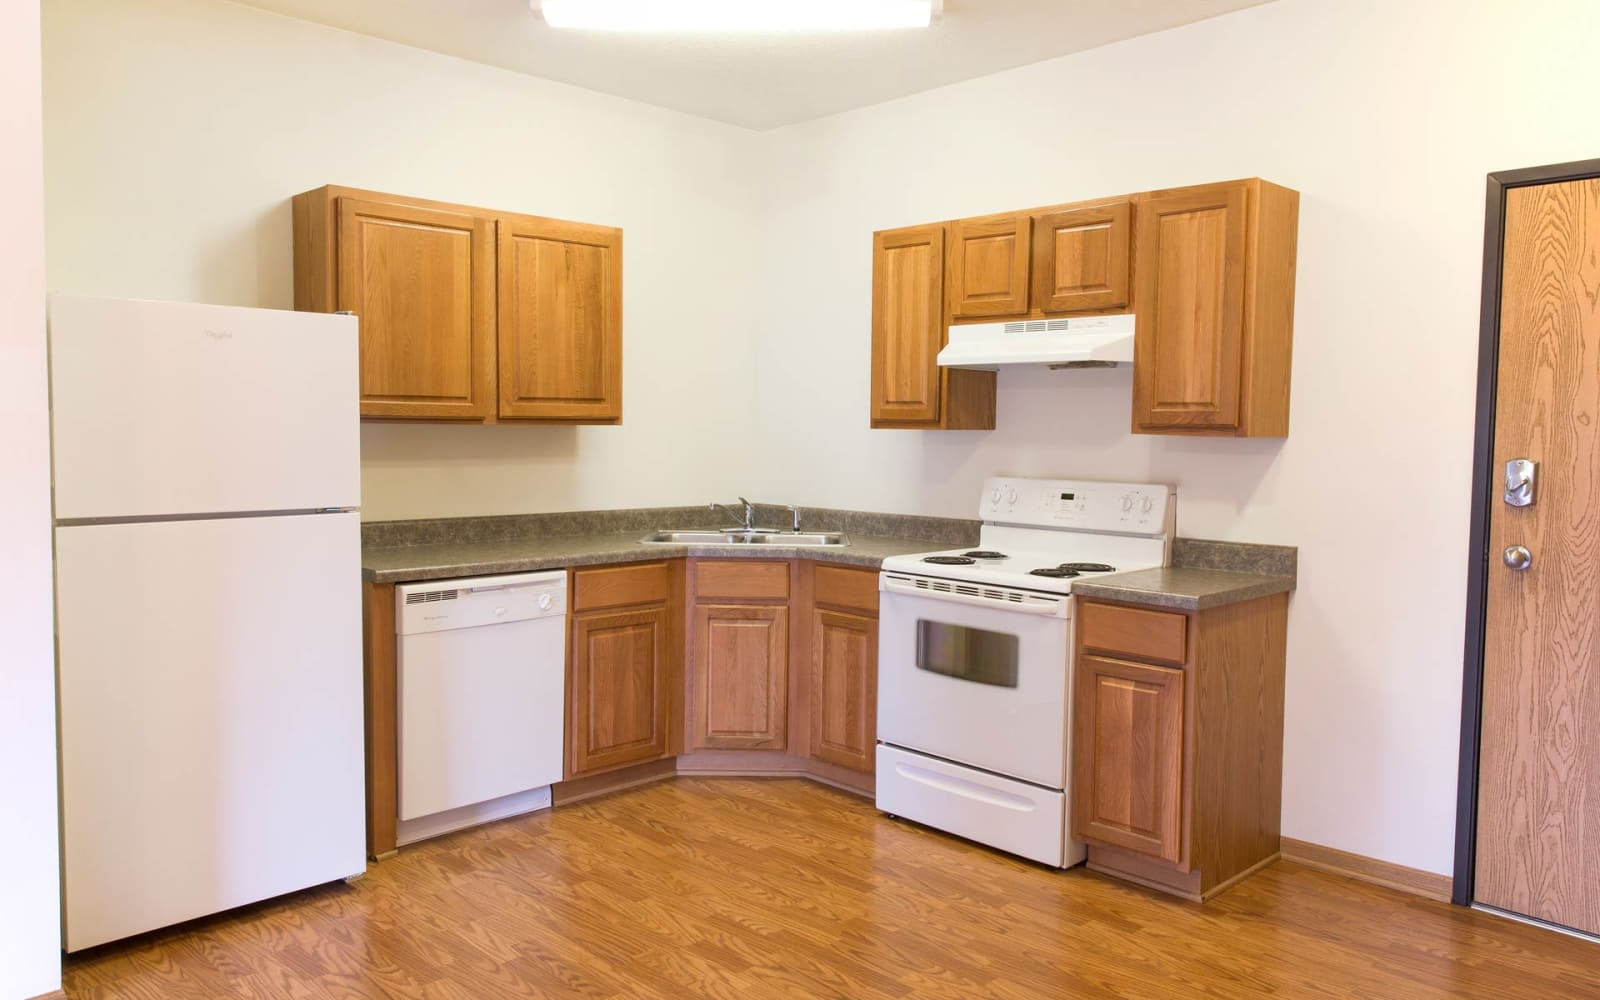 Apartment kitchen with wood flooring at Westwood Village in Ames, Iowa